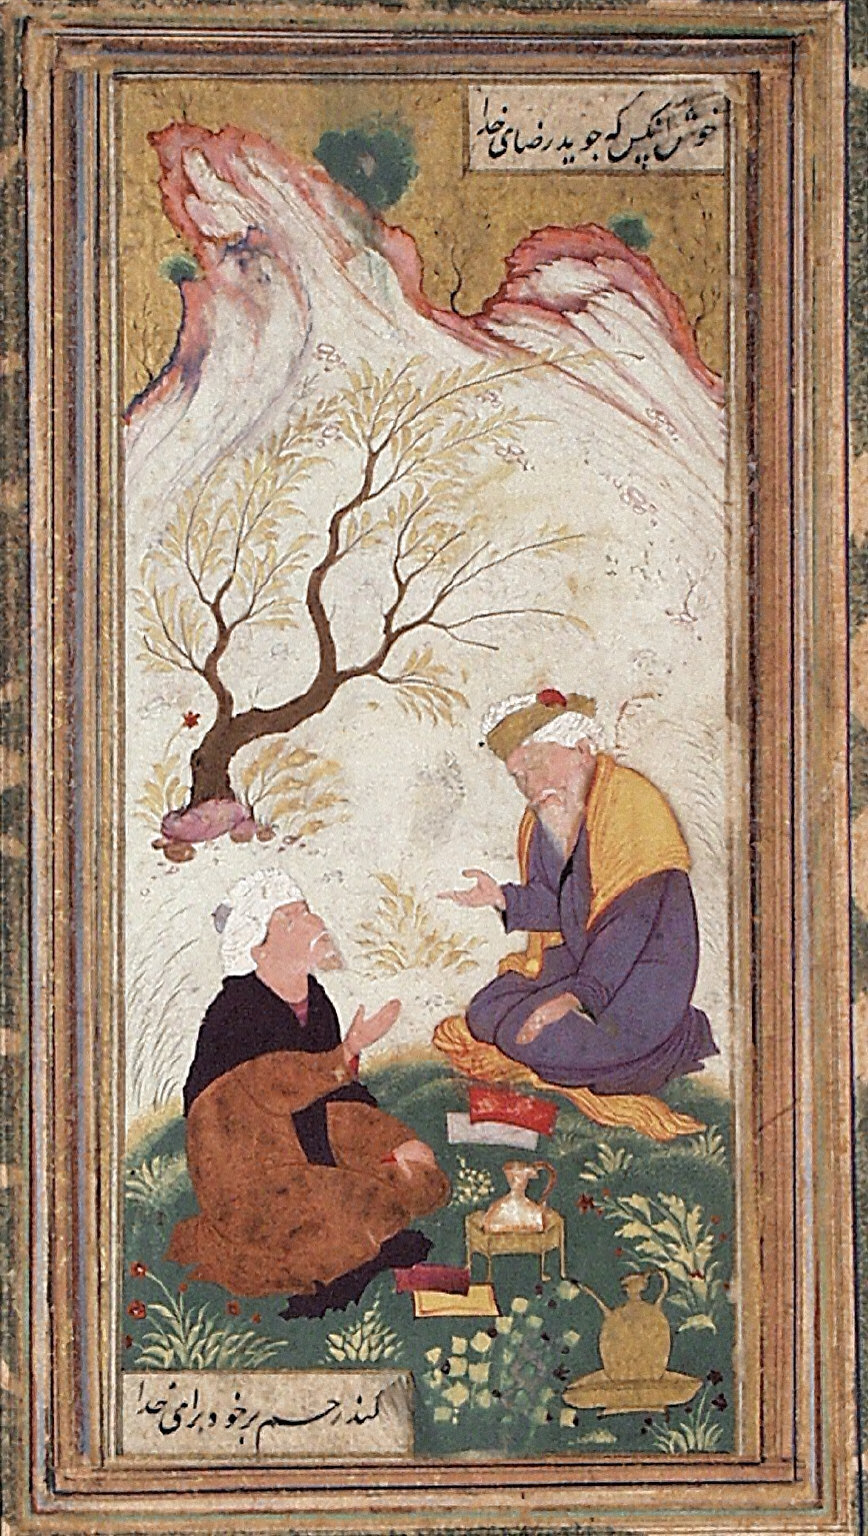 Two Bearded Men in Conversation in a Landscape